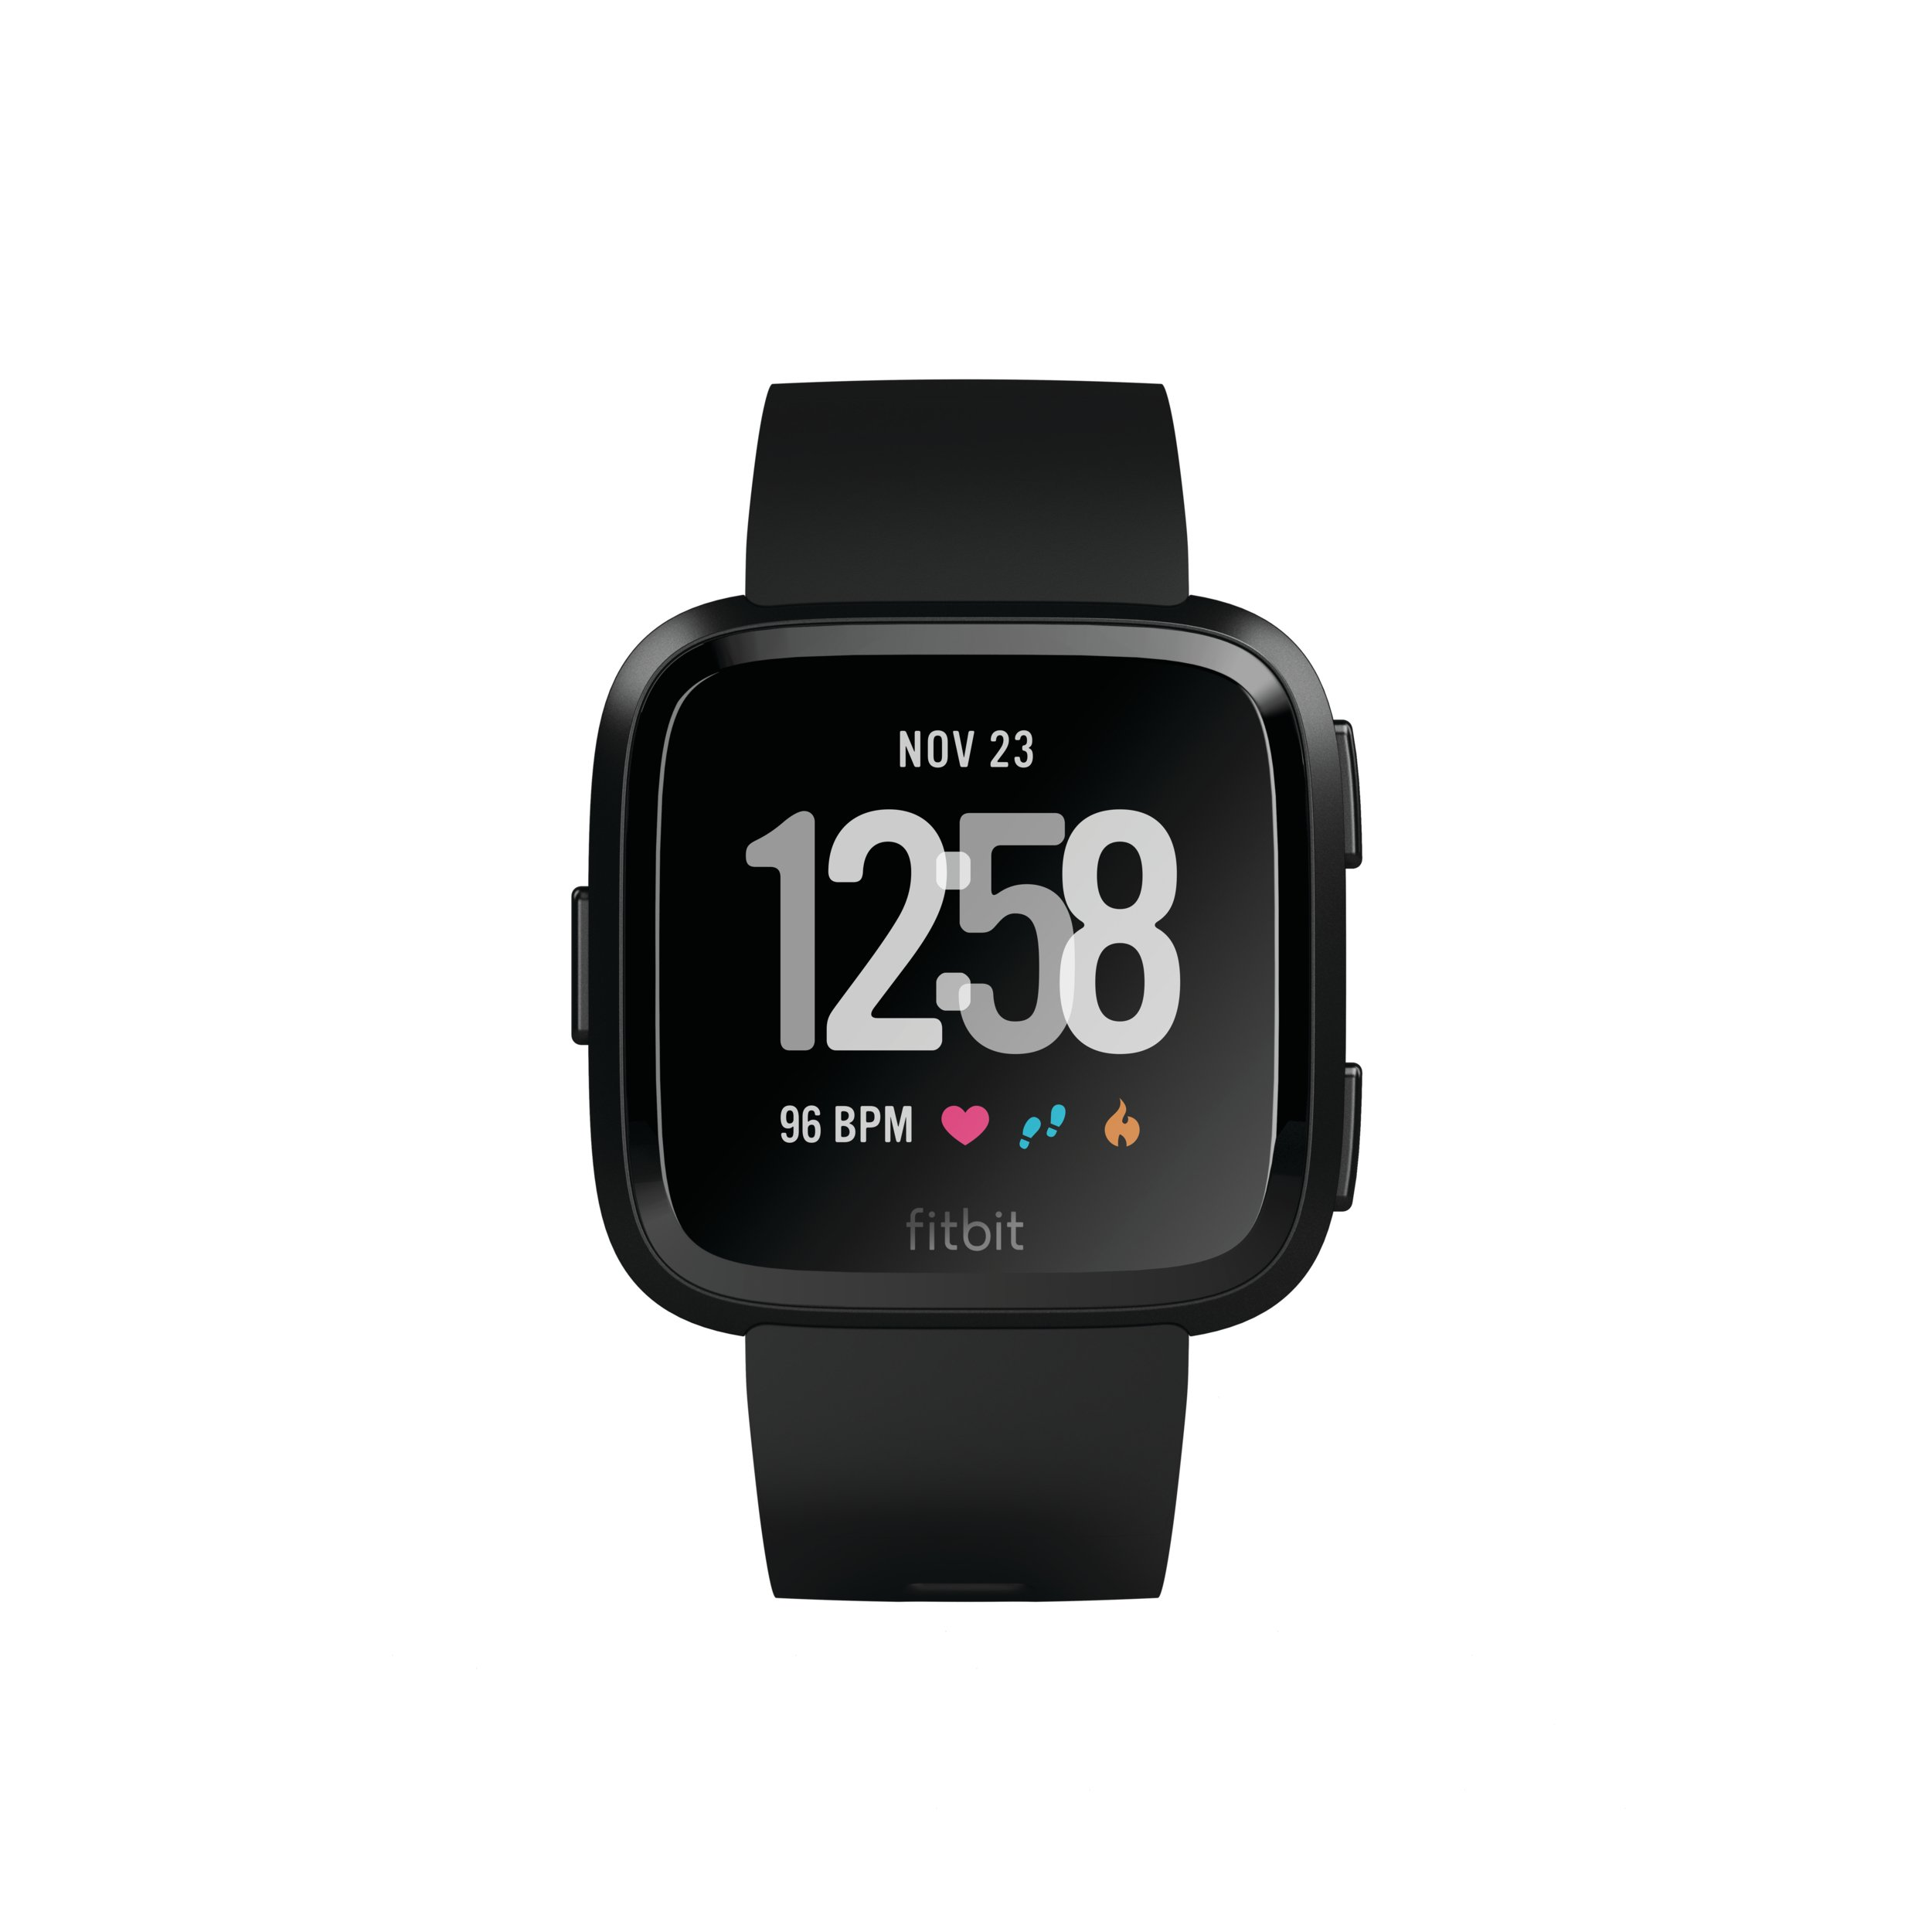 Fitbit Versa Smartwatch, Black/Black Aluminium, One Size (S & L Bands Included) by Fitbit (Image #2)